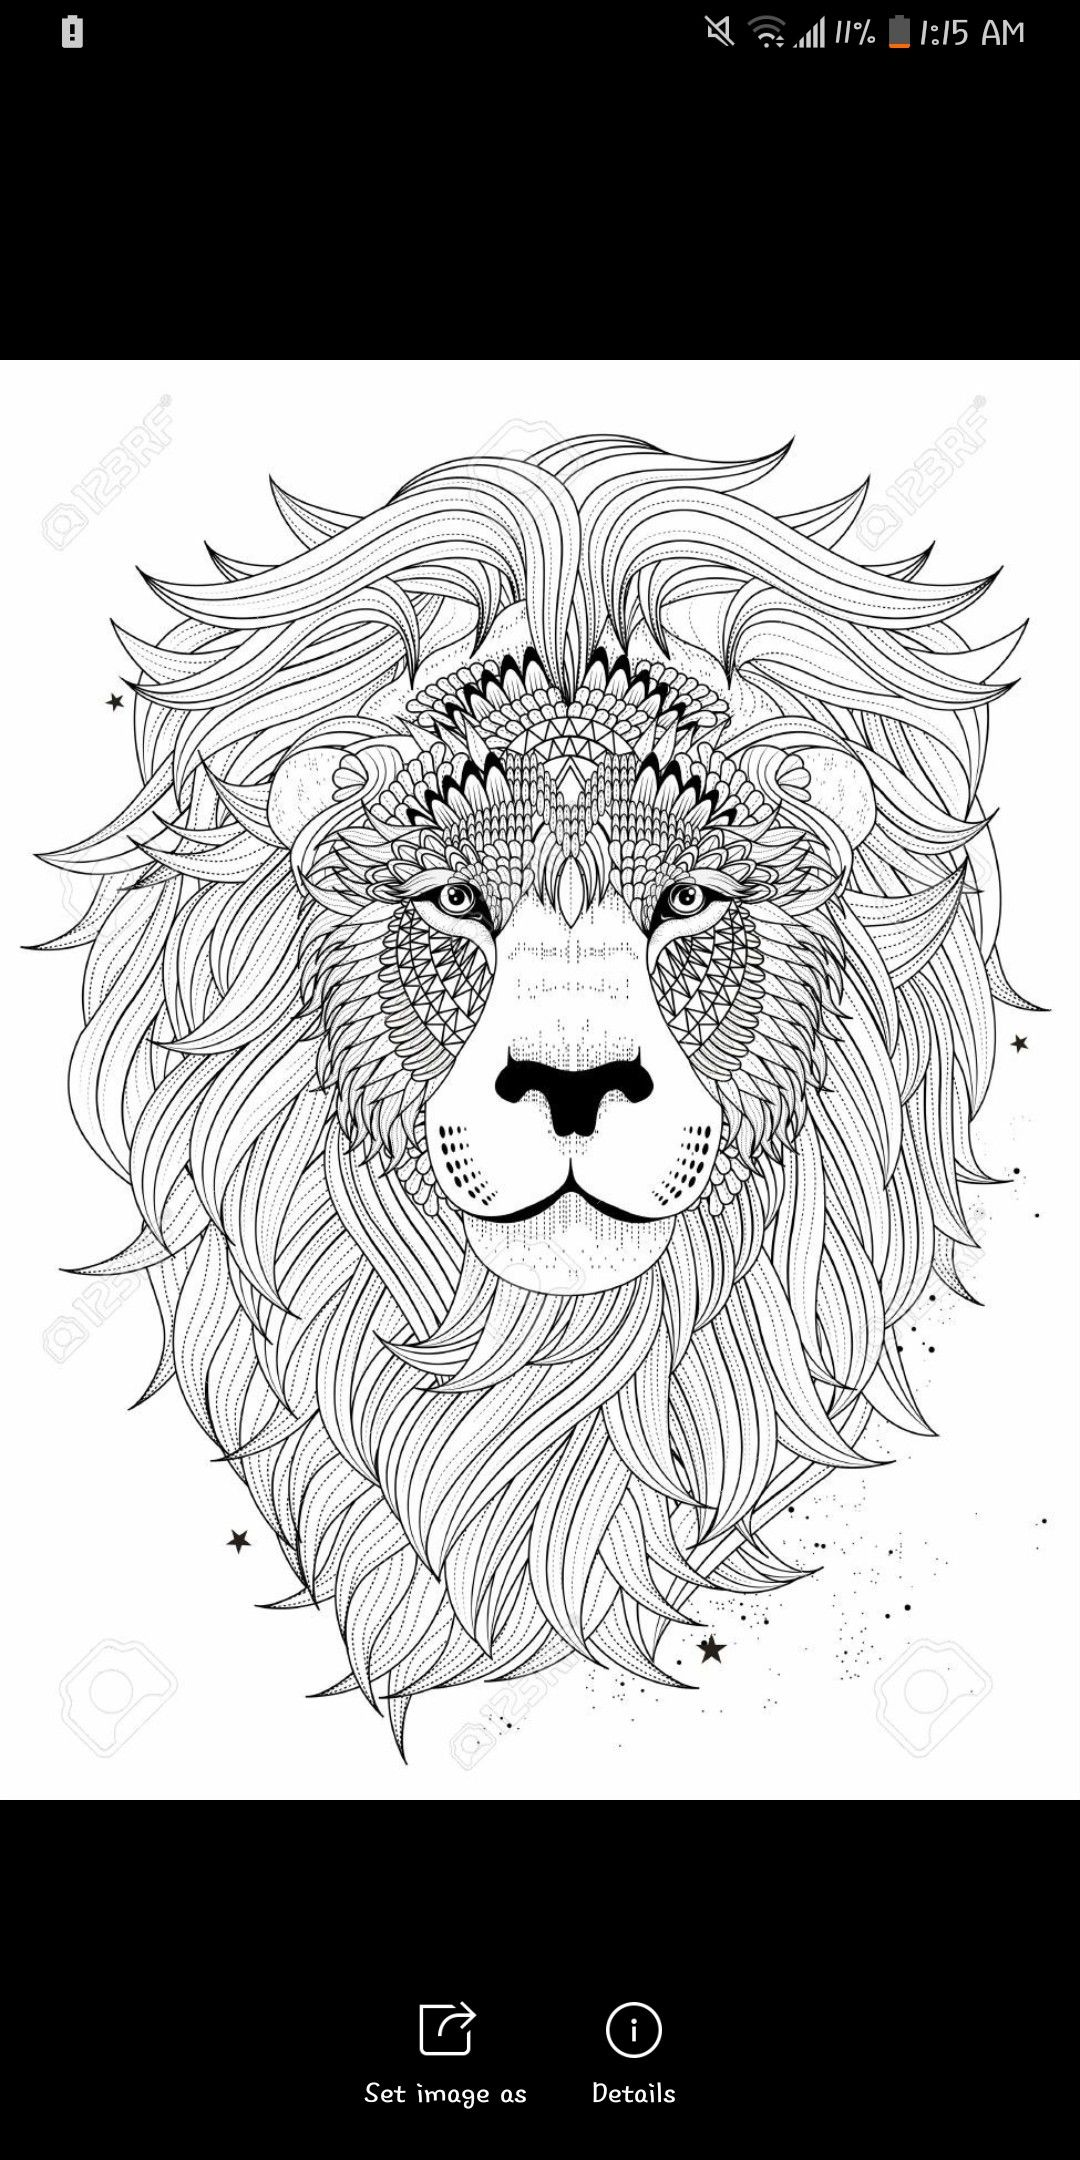 Lion face | Lion coloring pages, Abstract lion, Adult ...